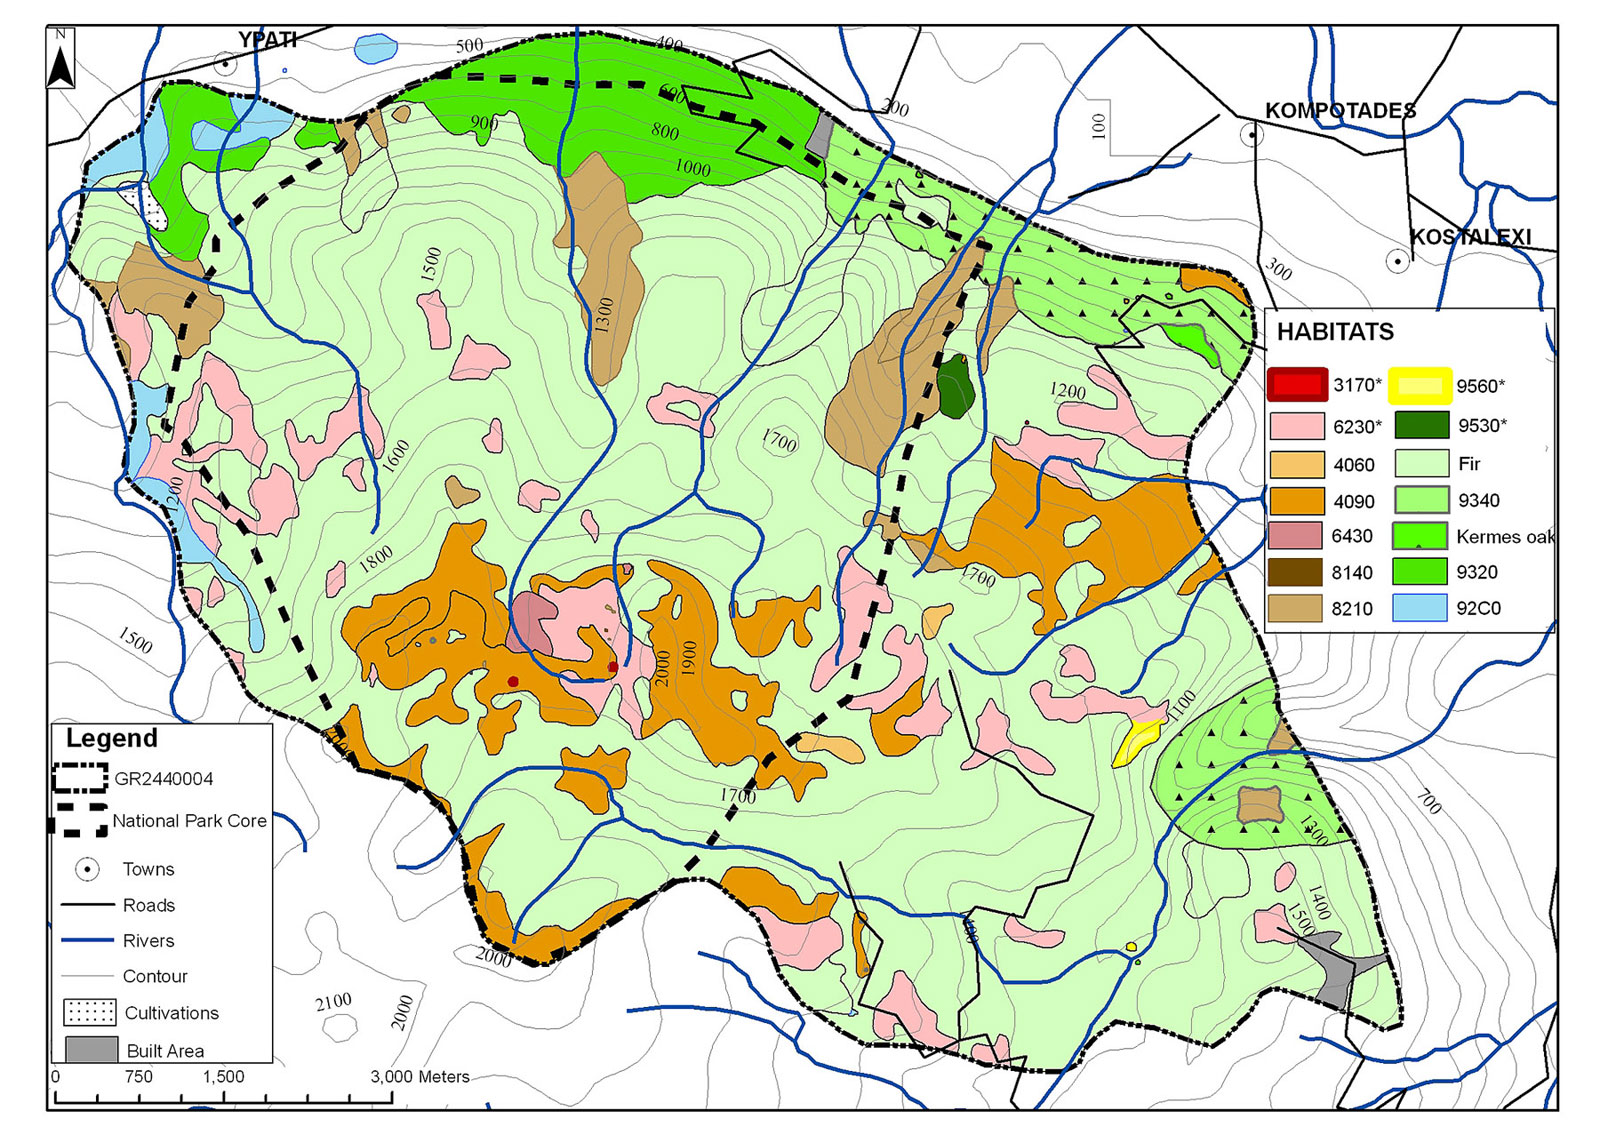 The existing habitat map for GR2440004